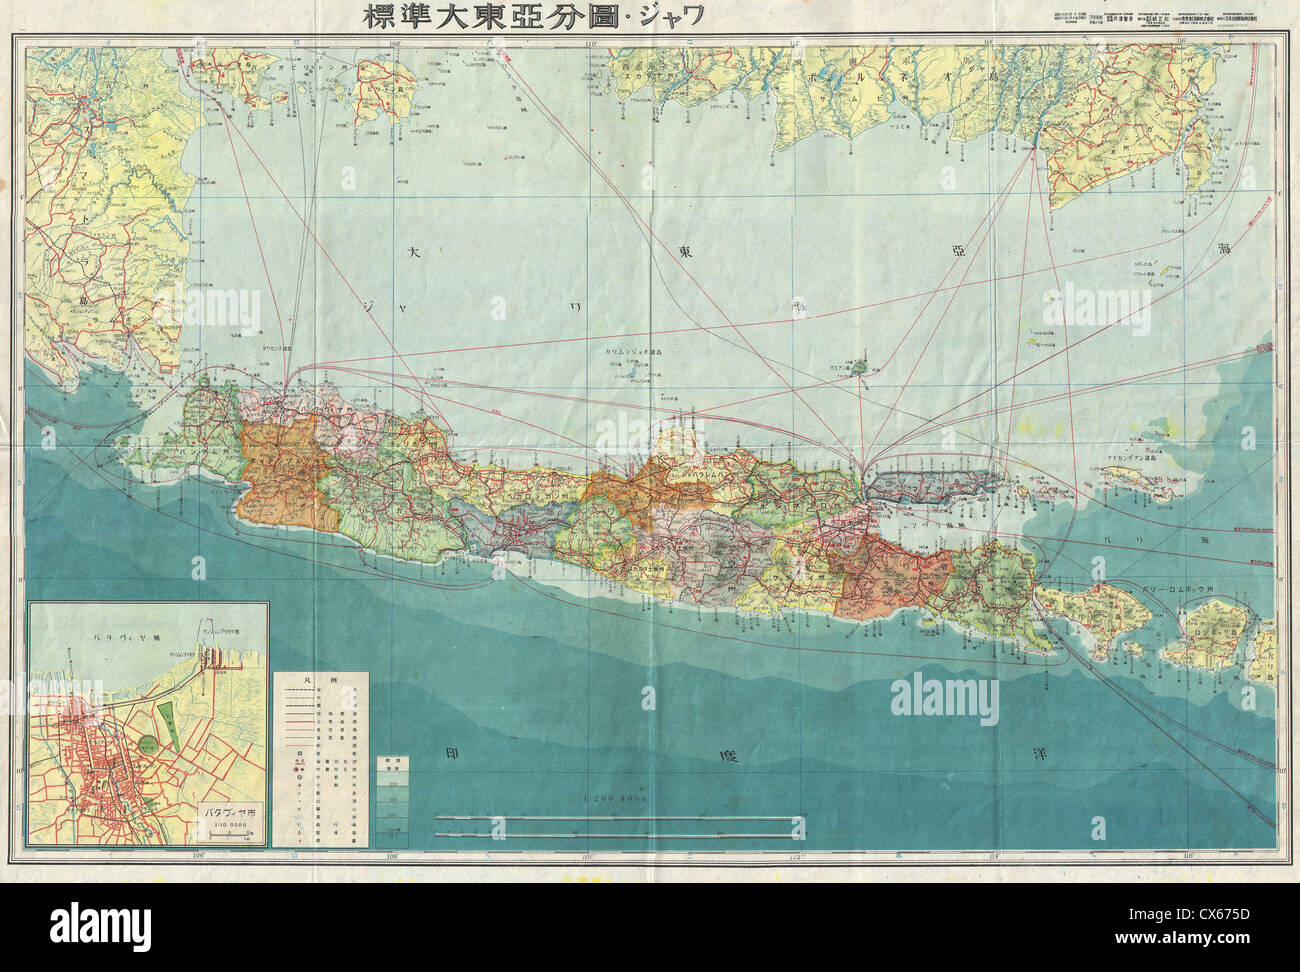 1943 world war ii japanese aeronautical map of java